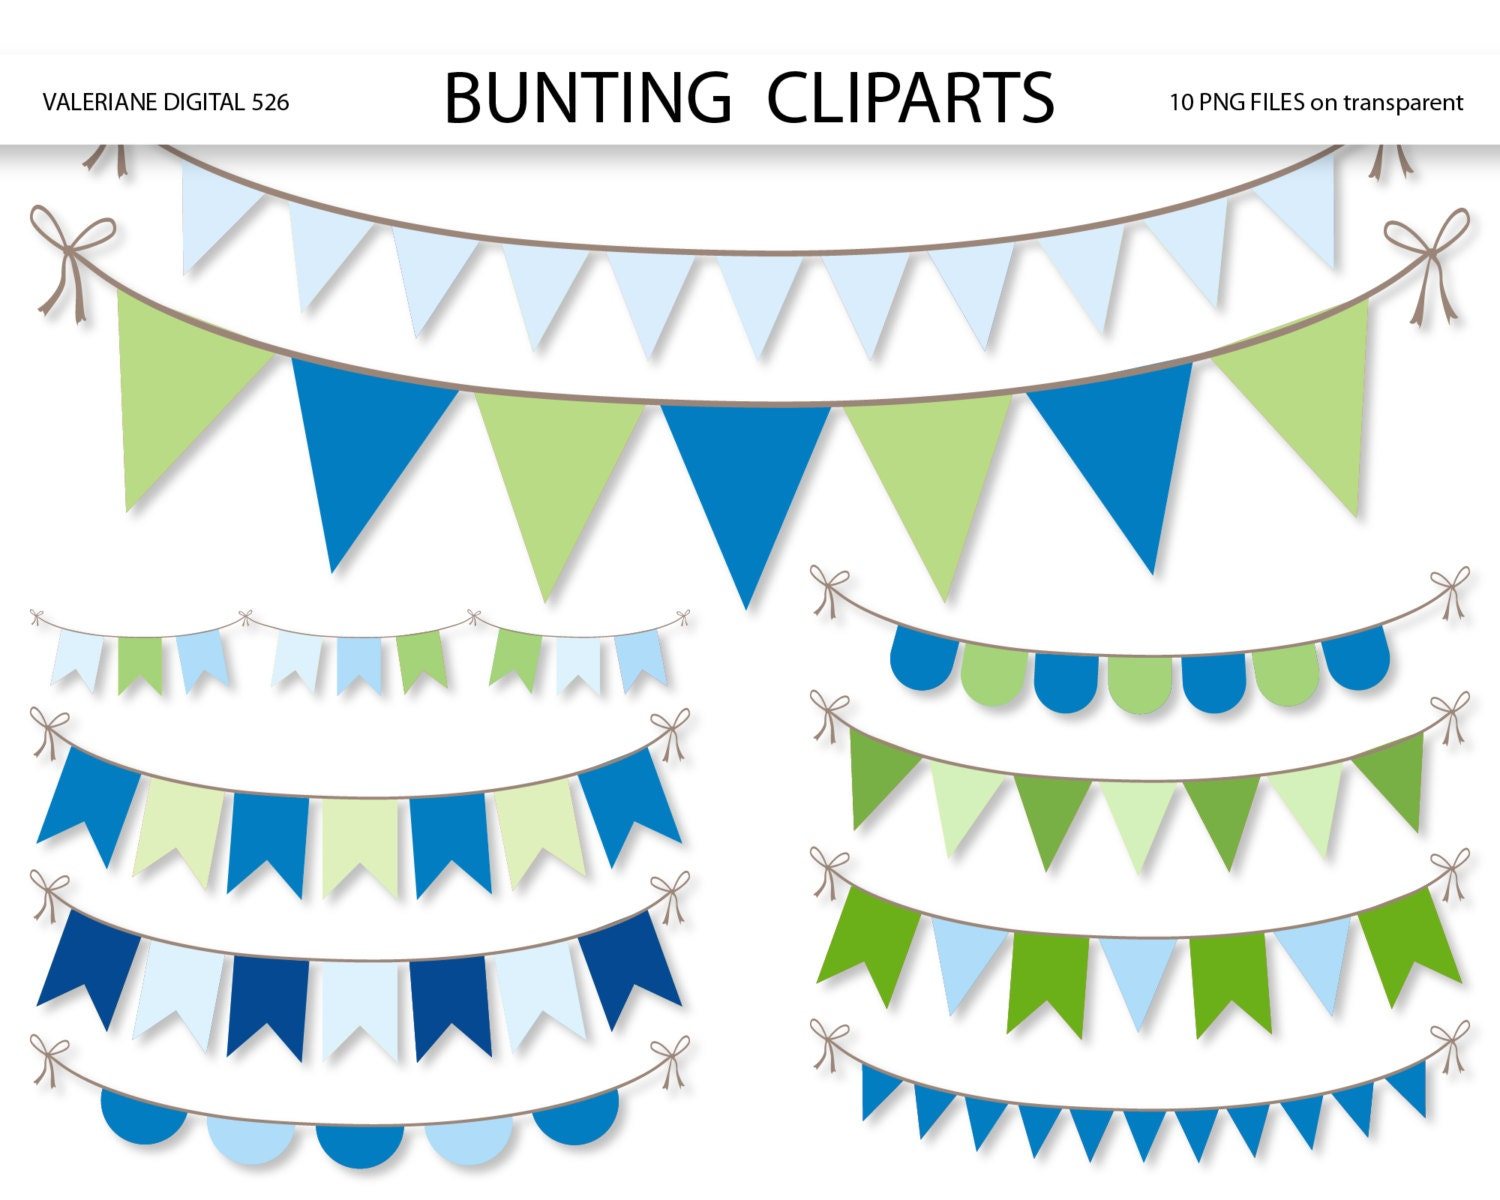 Clip Art Pennant Clip Art pennant clipart etsy bunting clip art for invitations scrapbooking 10 png files instant download pack 526